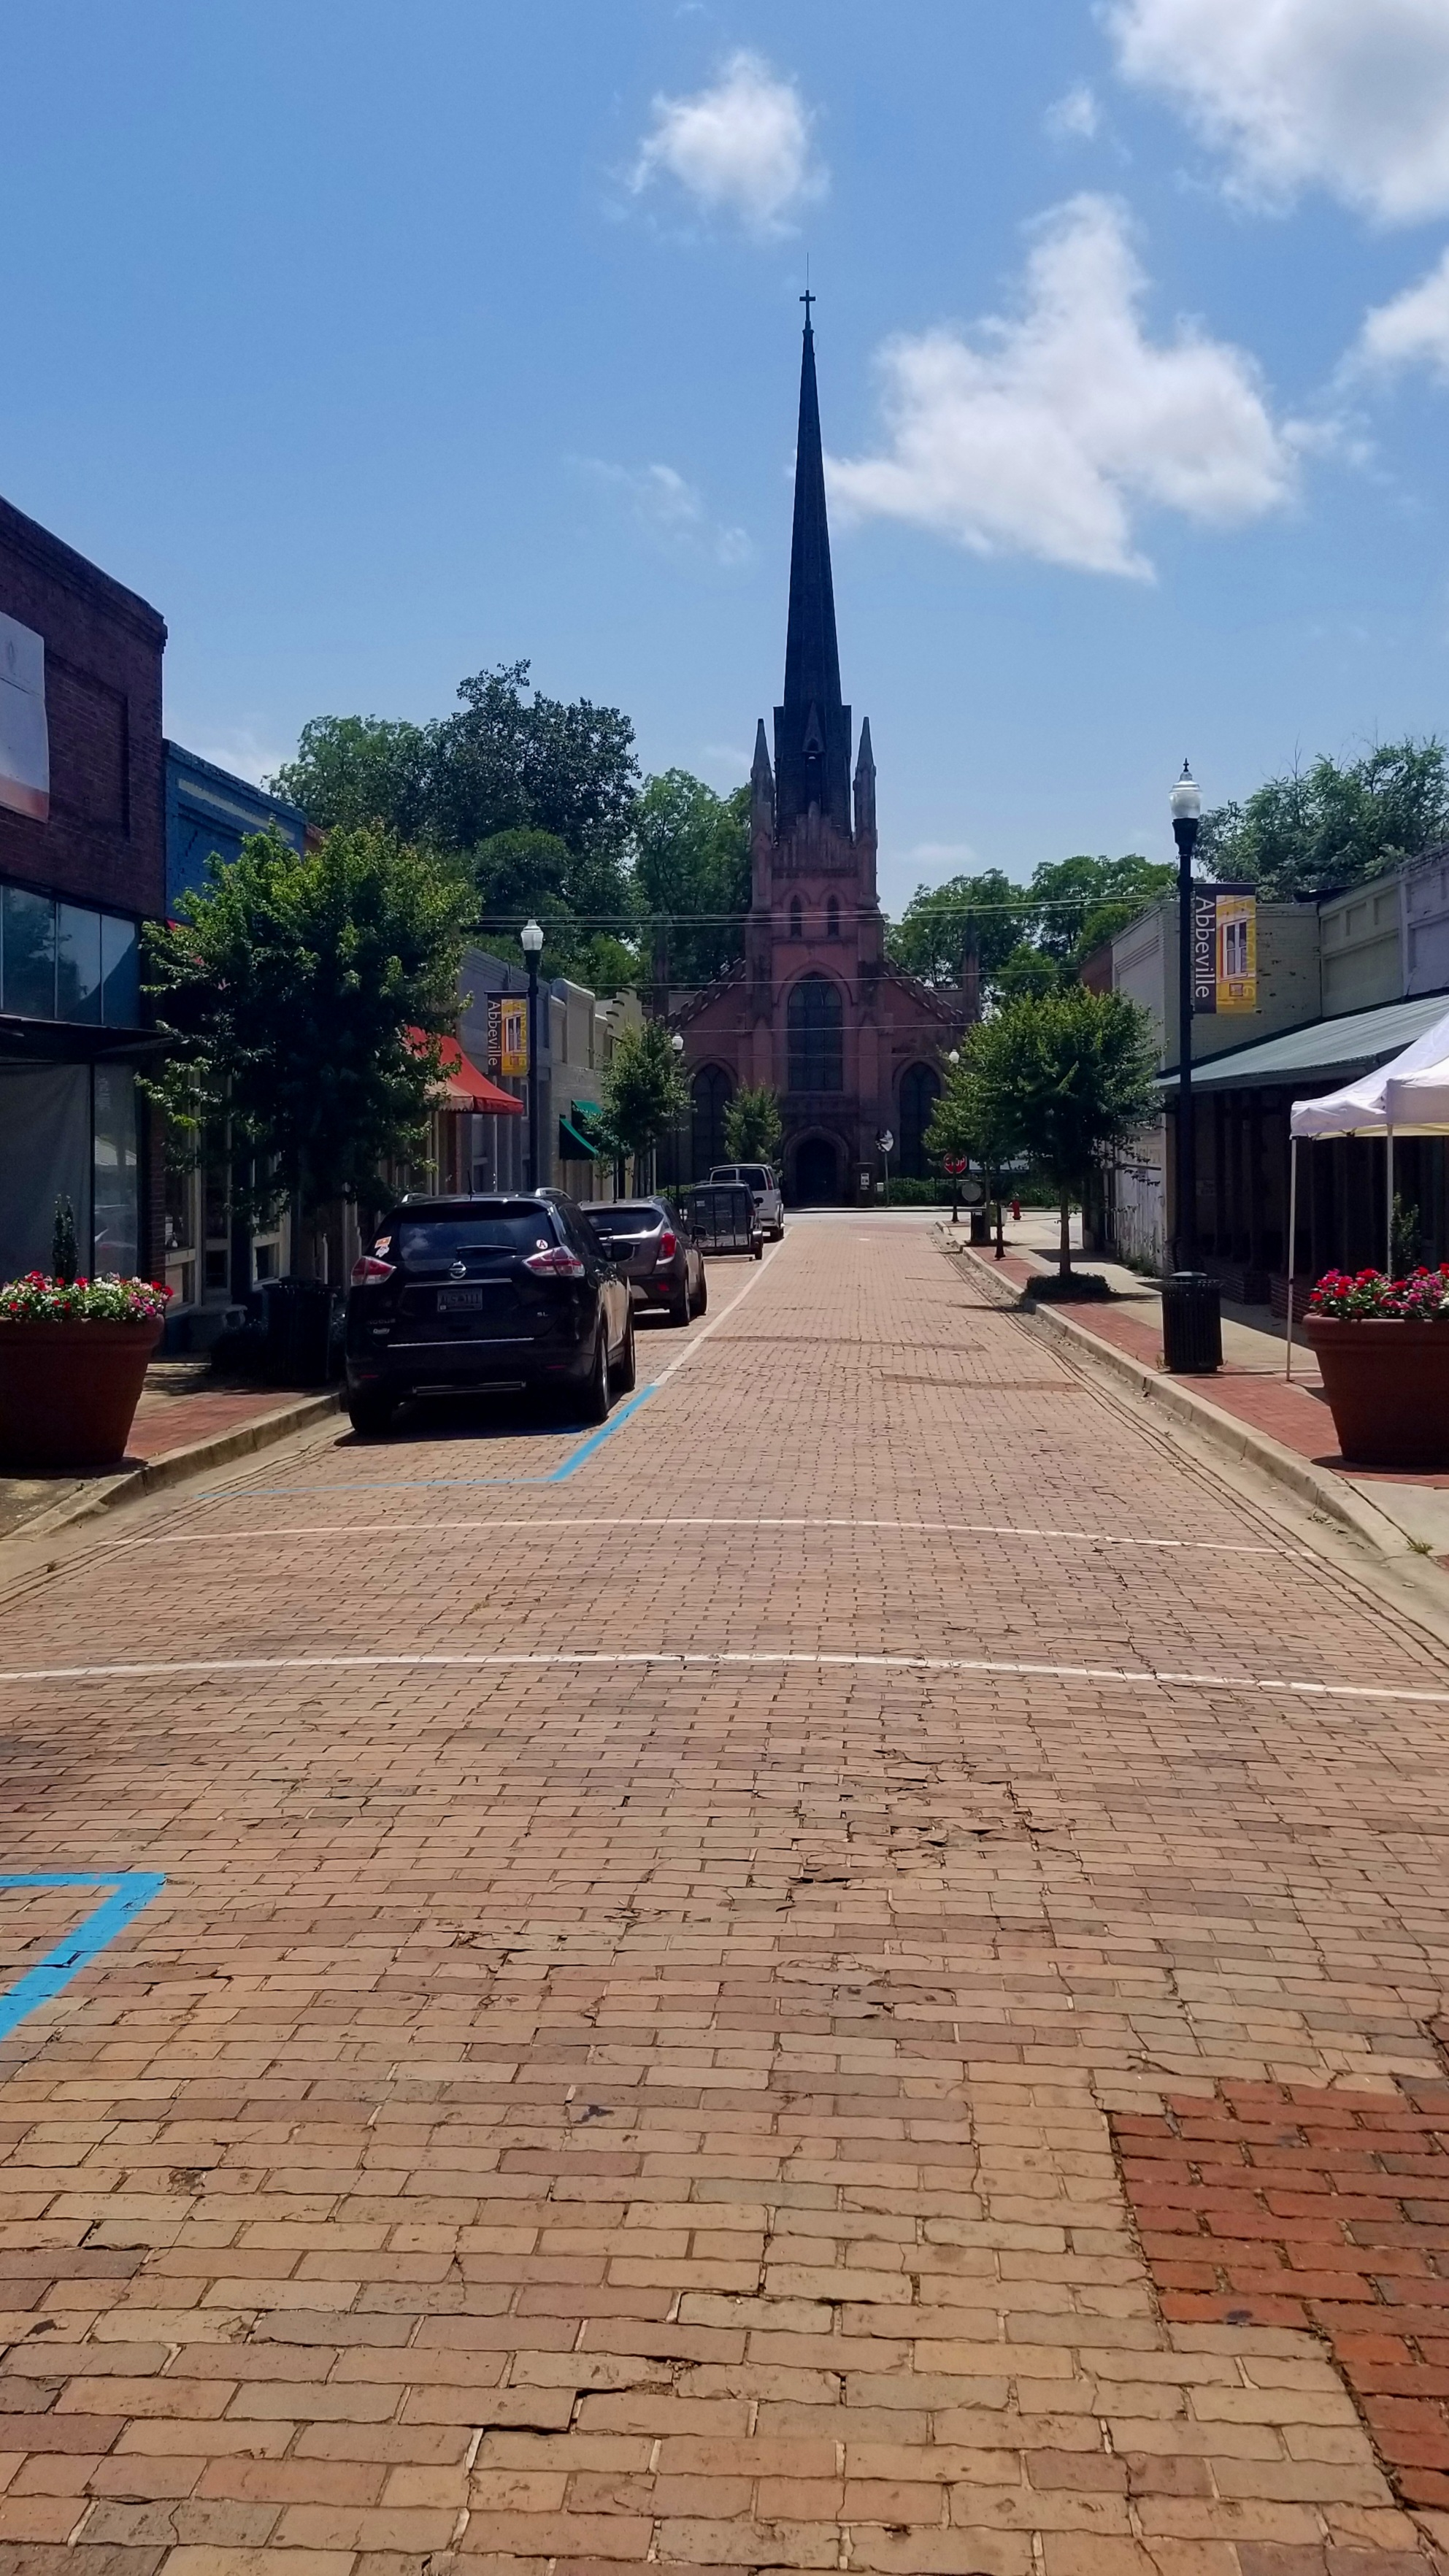 All around Abbeville you'll find old brick streets and lots of unique buildings like Trinity Episcopal Church.